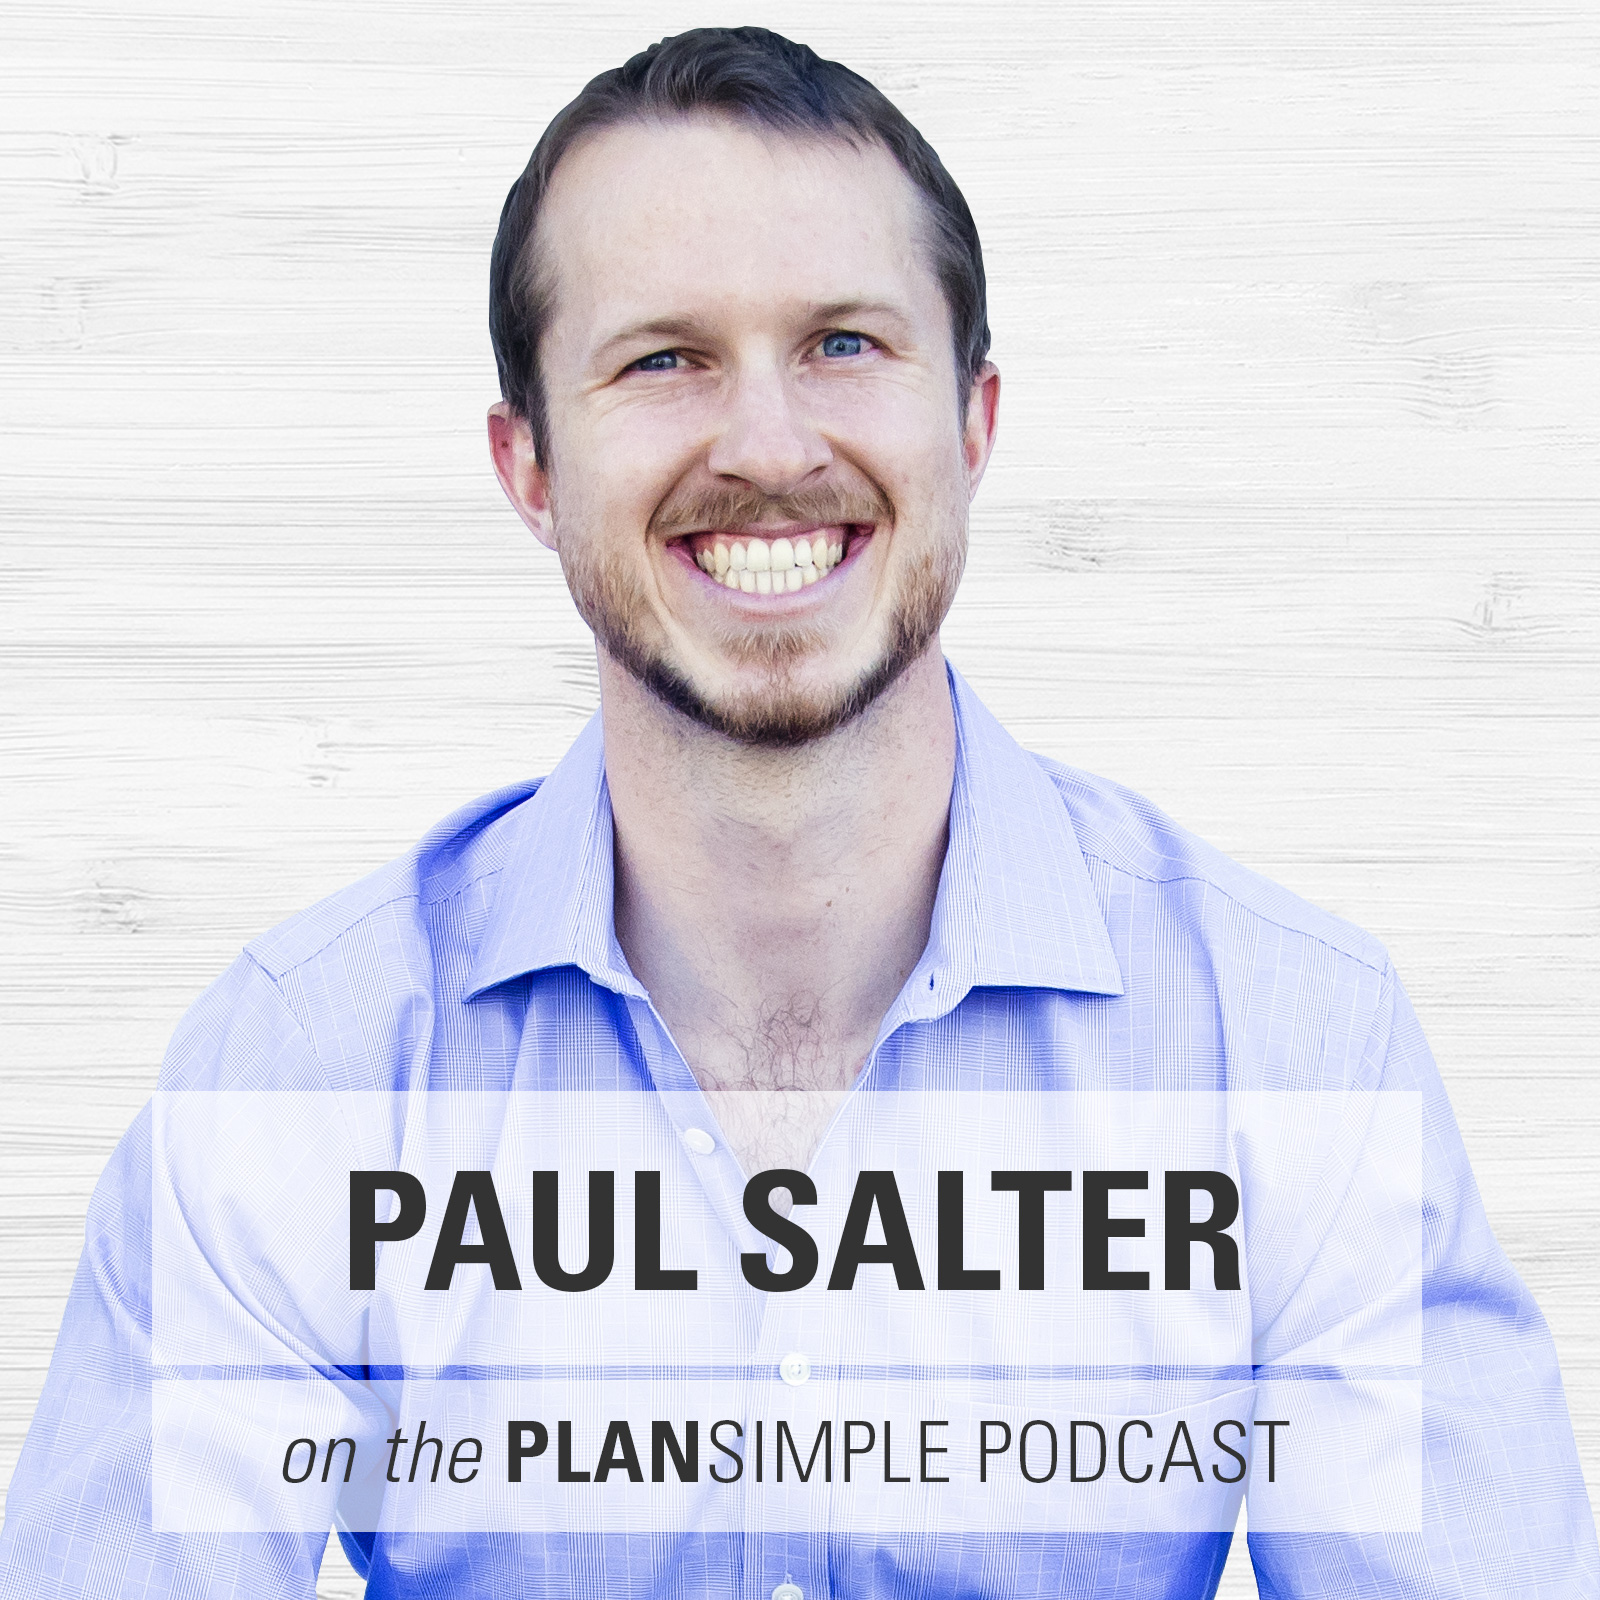 Maintaining And Mindset With Paul Salter